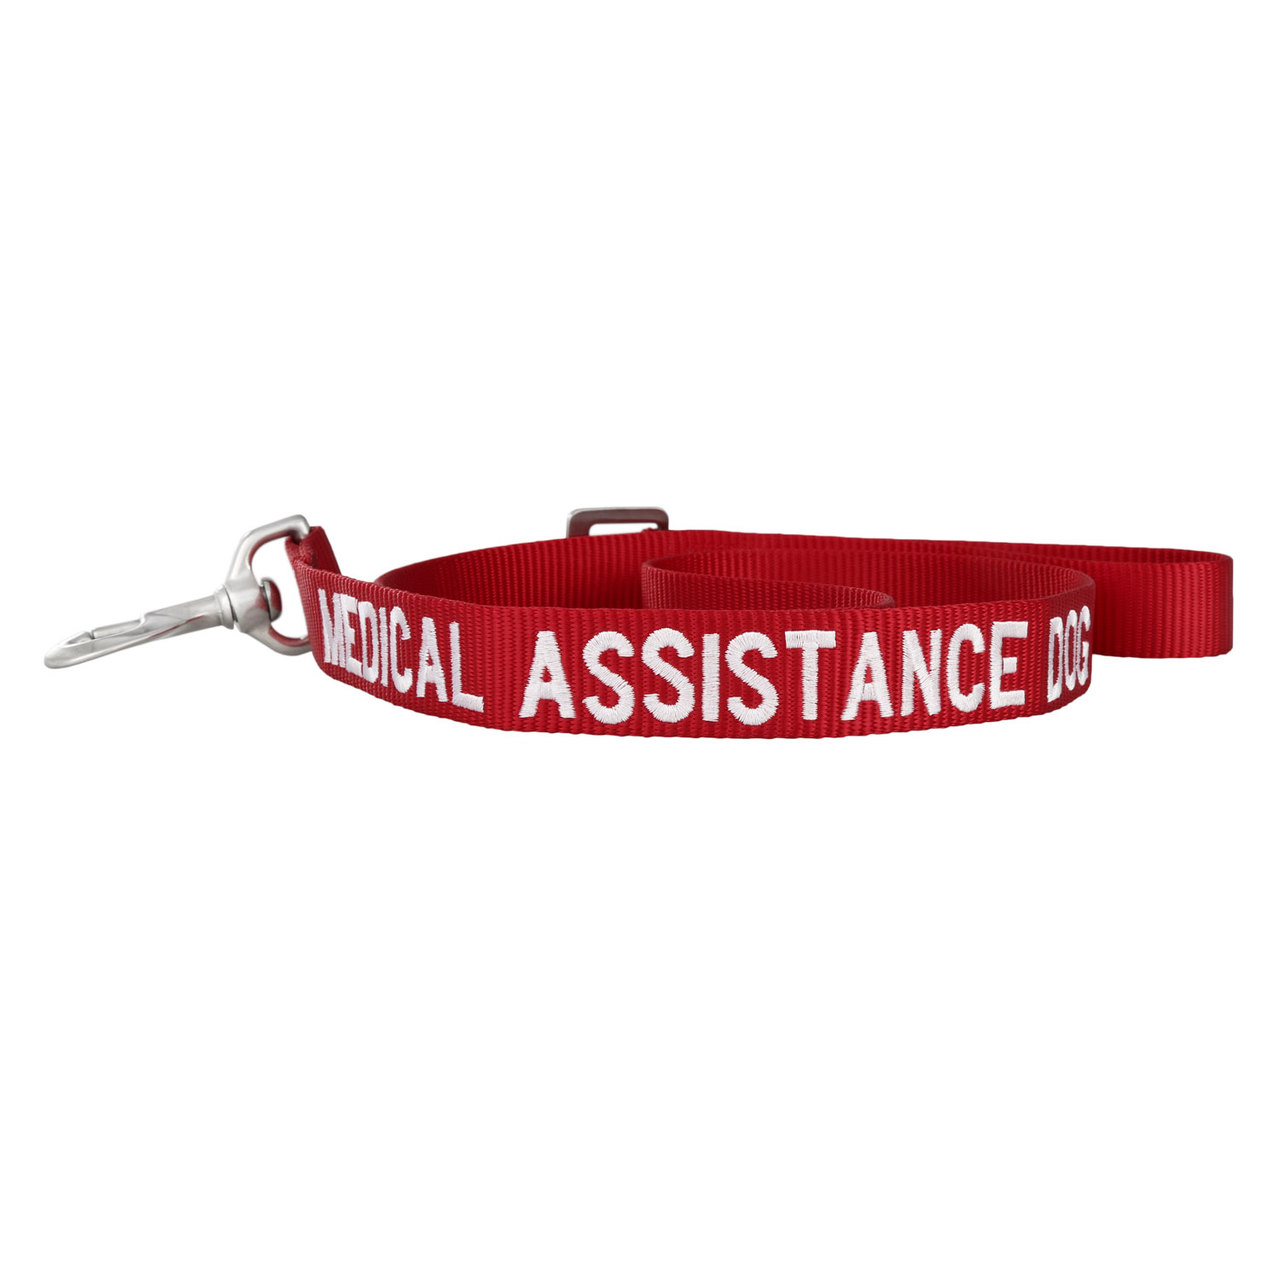 Embroidered Awareness Dog Leash - Red with White